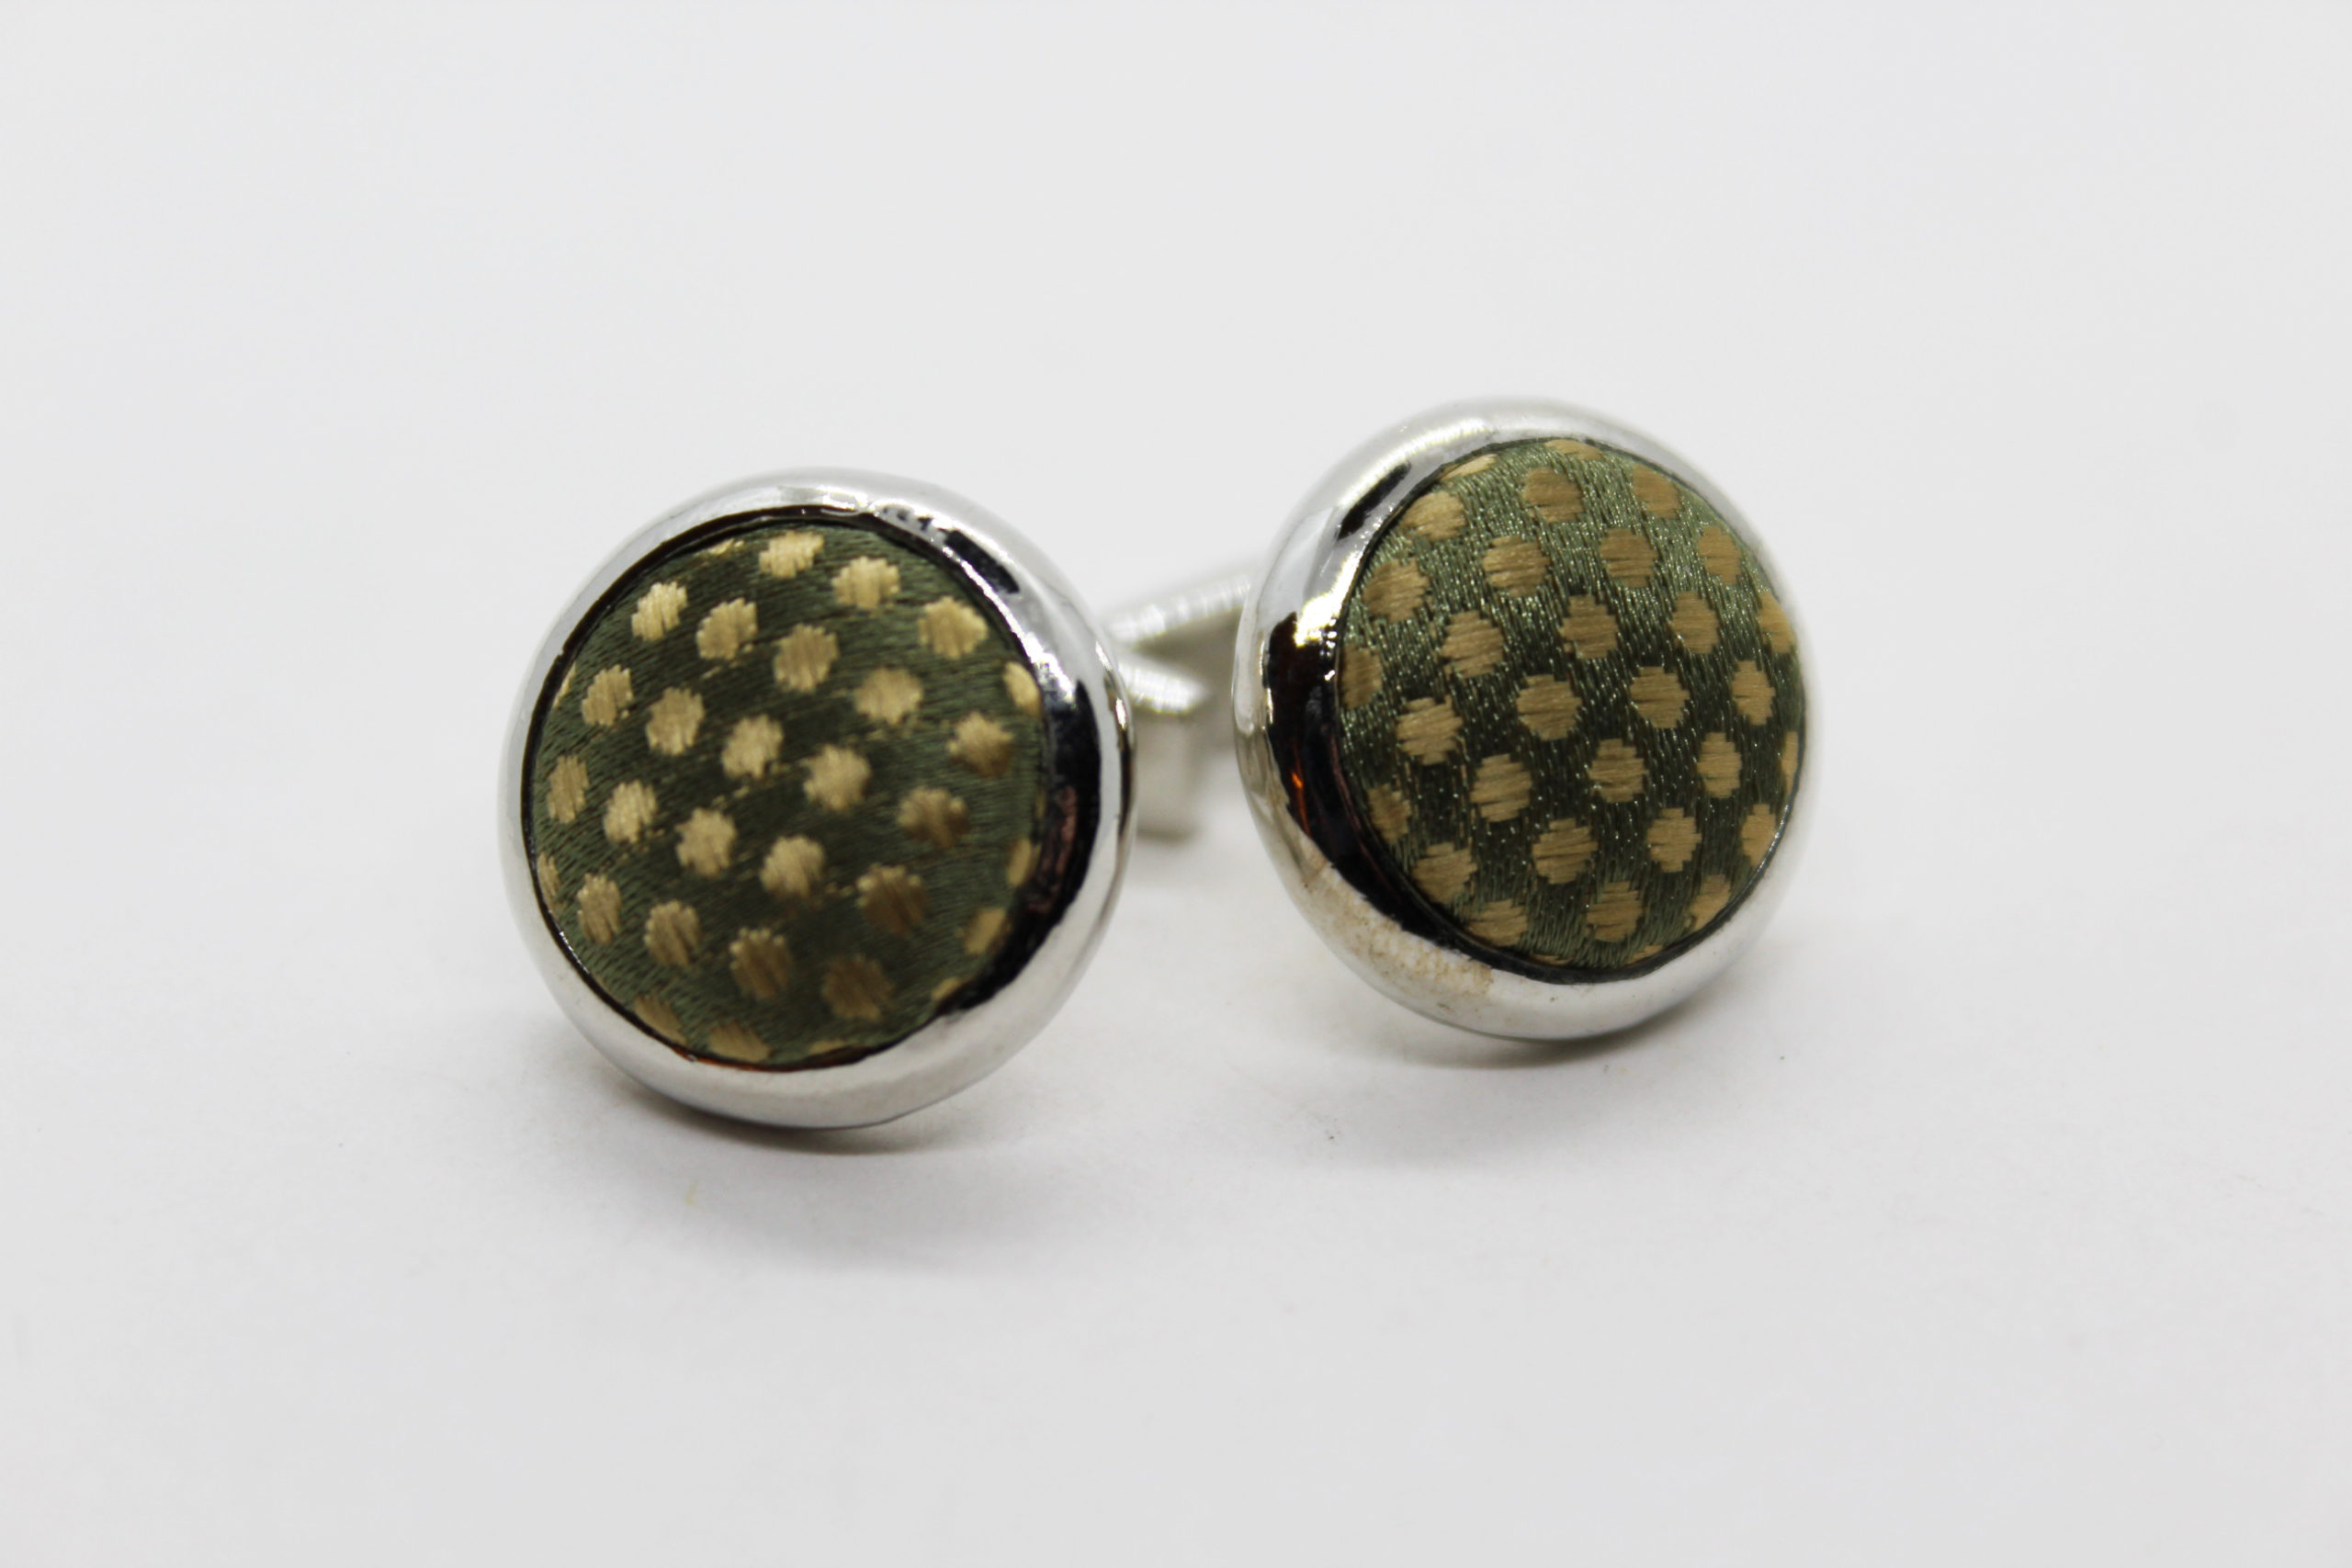 Vintage Handmade Fabric Geometric Cufflinks | Whispering City RVA